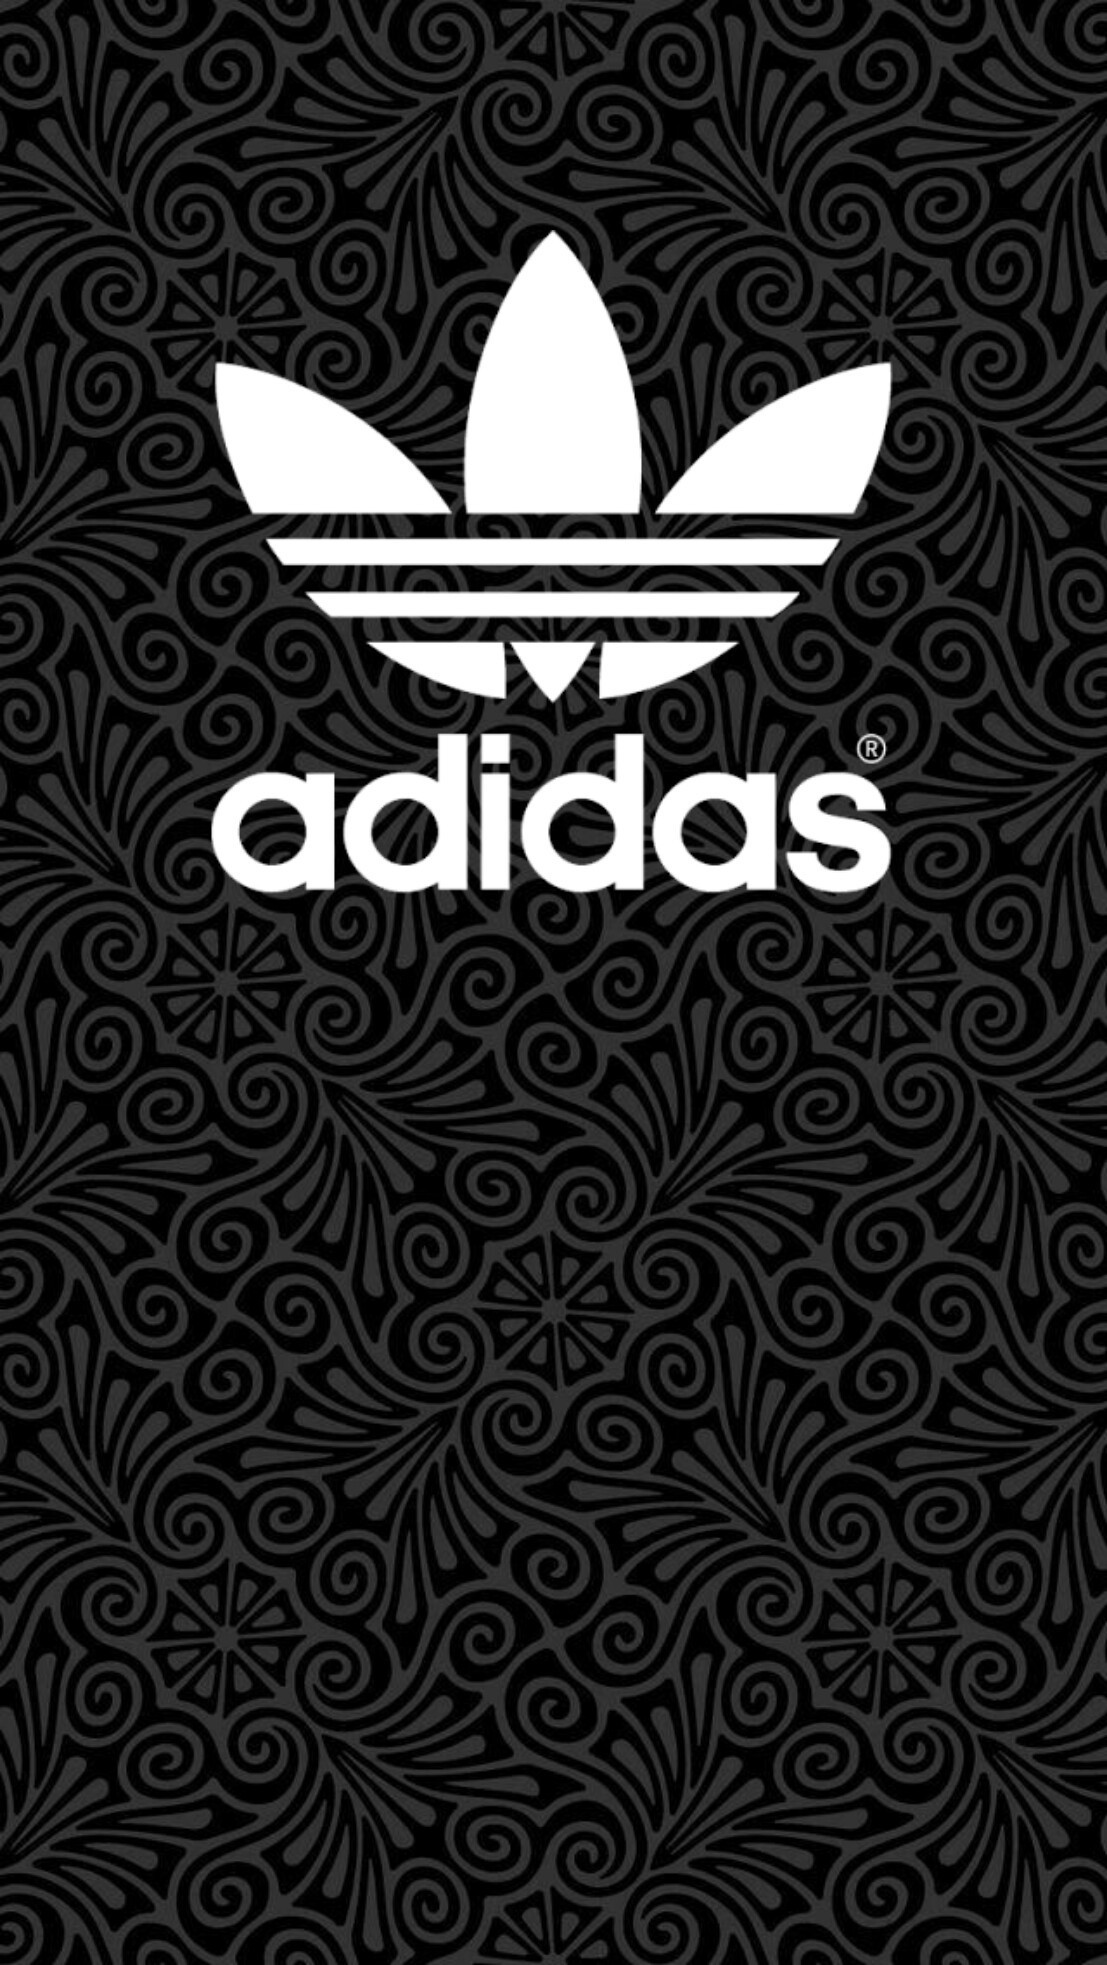 Waw Wee Wallpaper Android